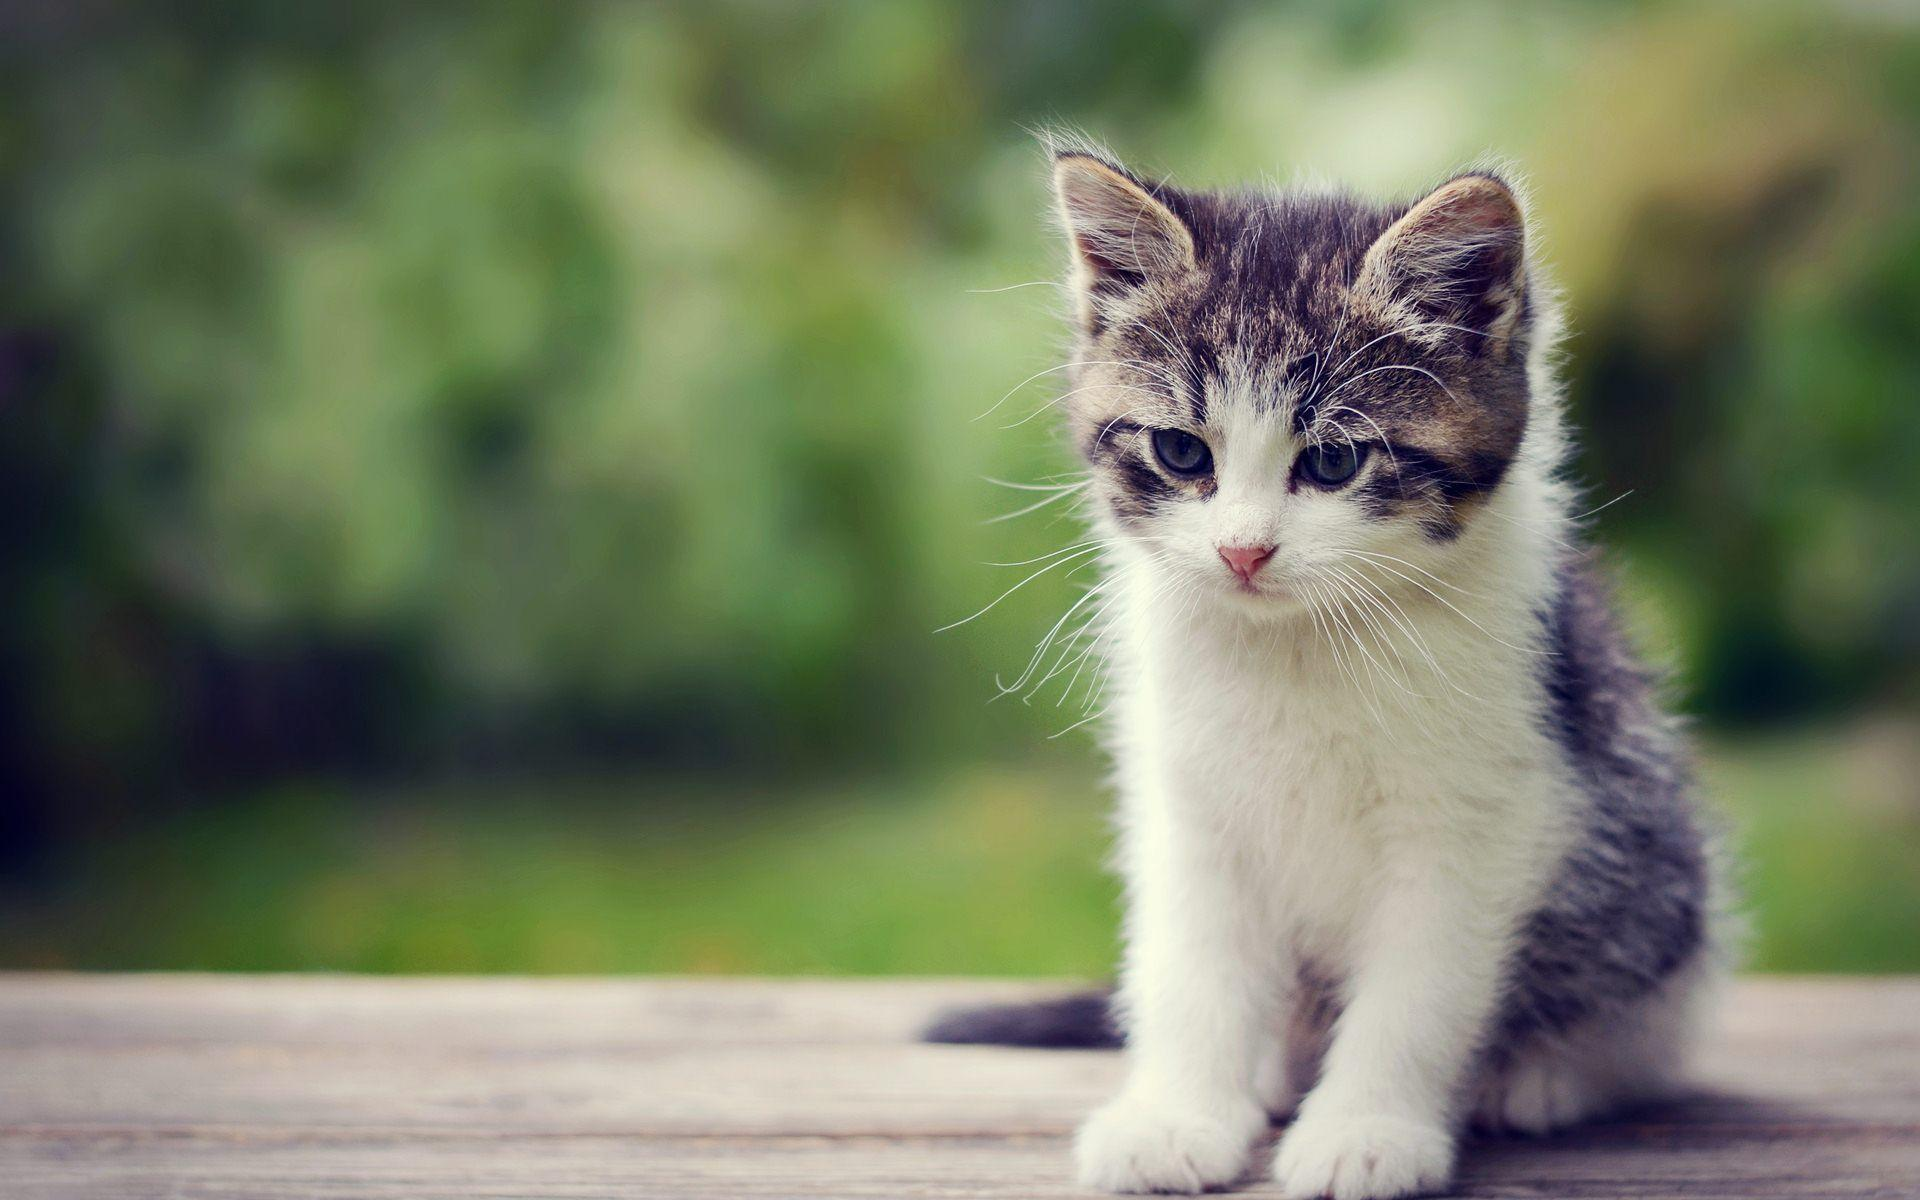 Cute Kittens Wallpapers 1920x1200